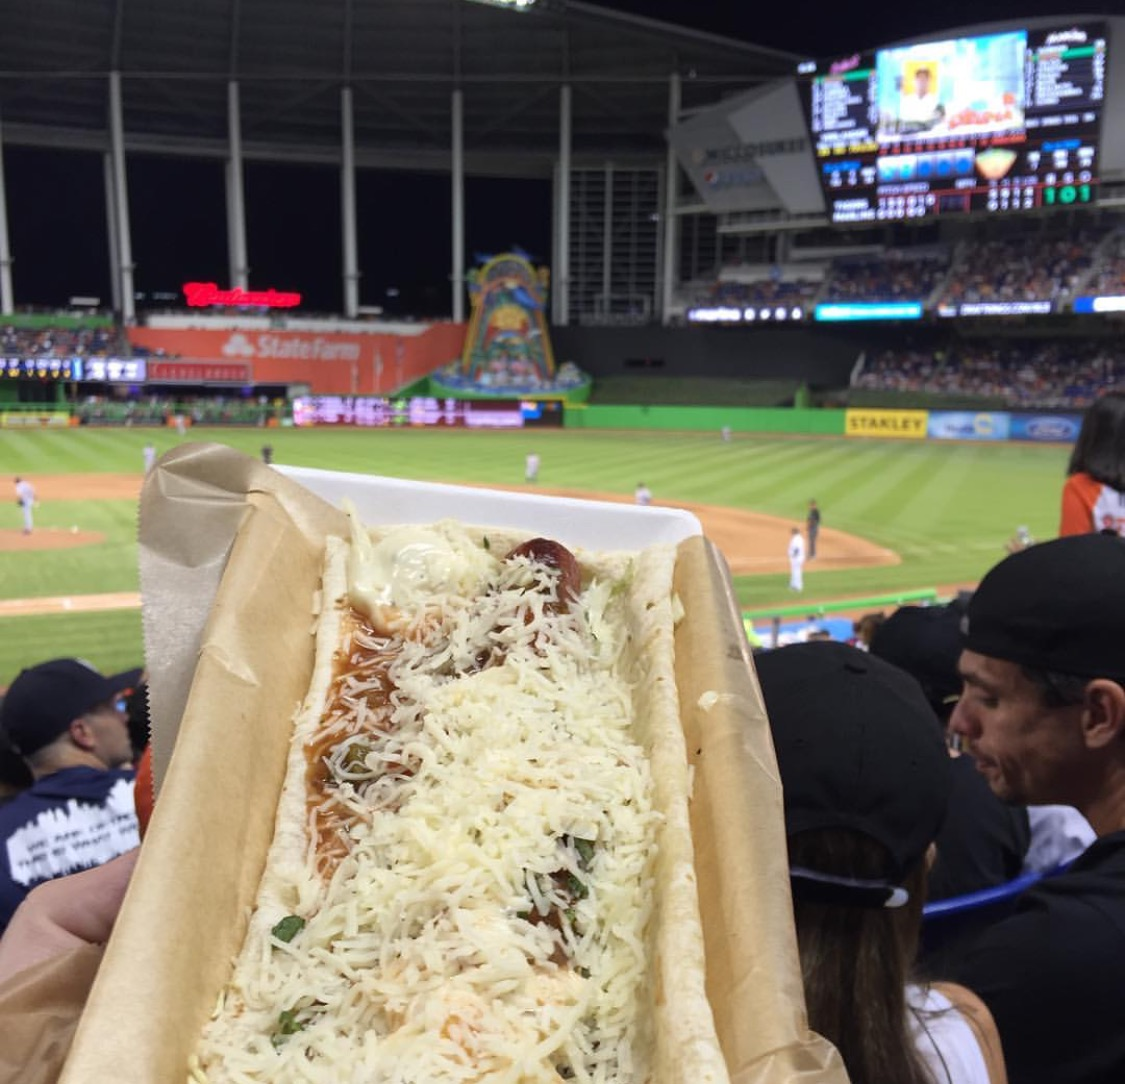 The Miami Mex Dog available for $11.25 (Kbonk28/Instagram)